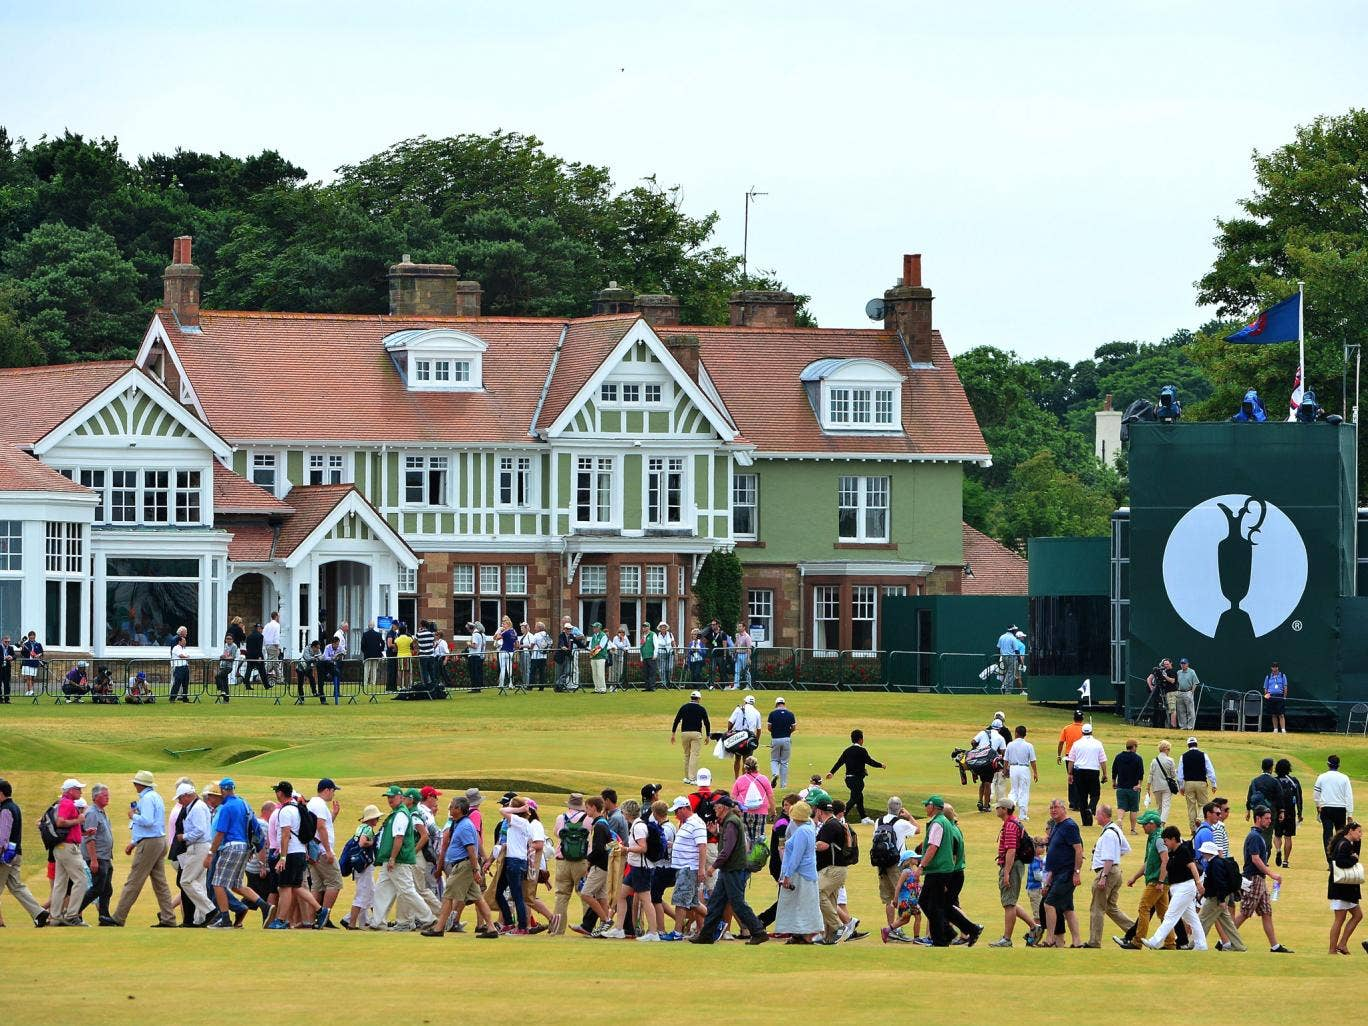 Golf fans make their way across the 18th fairway during practice for the Open Championship at Muirfield